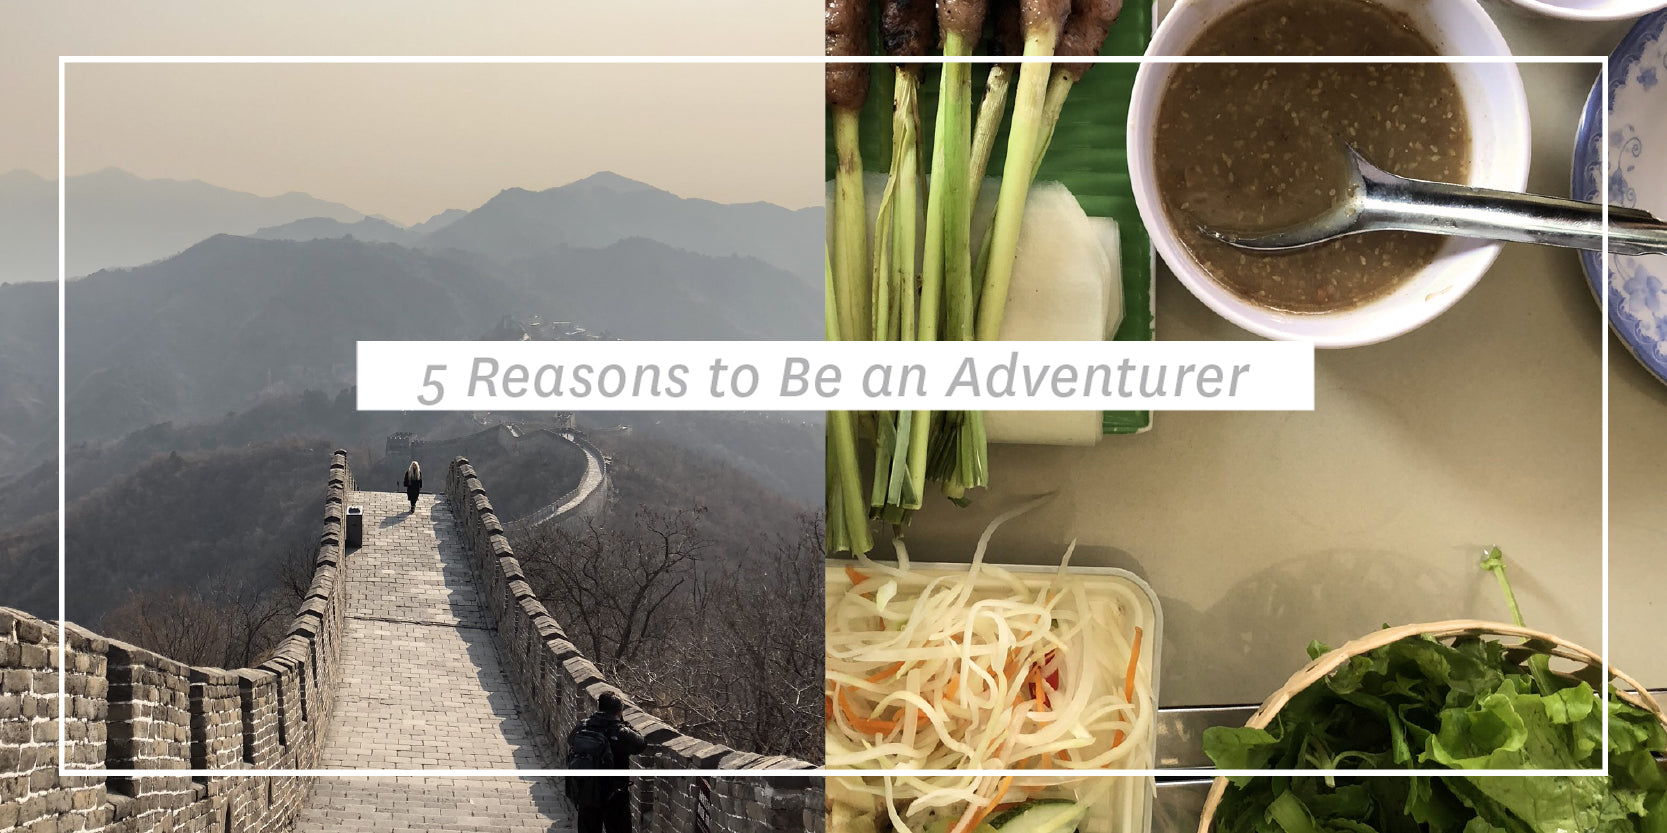 5 Reasons to be an Adventurer